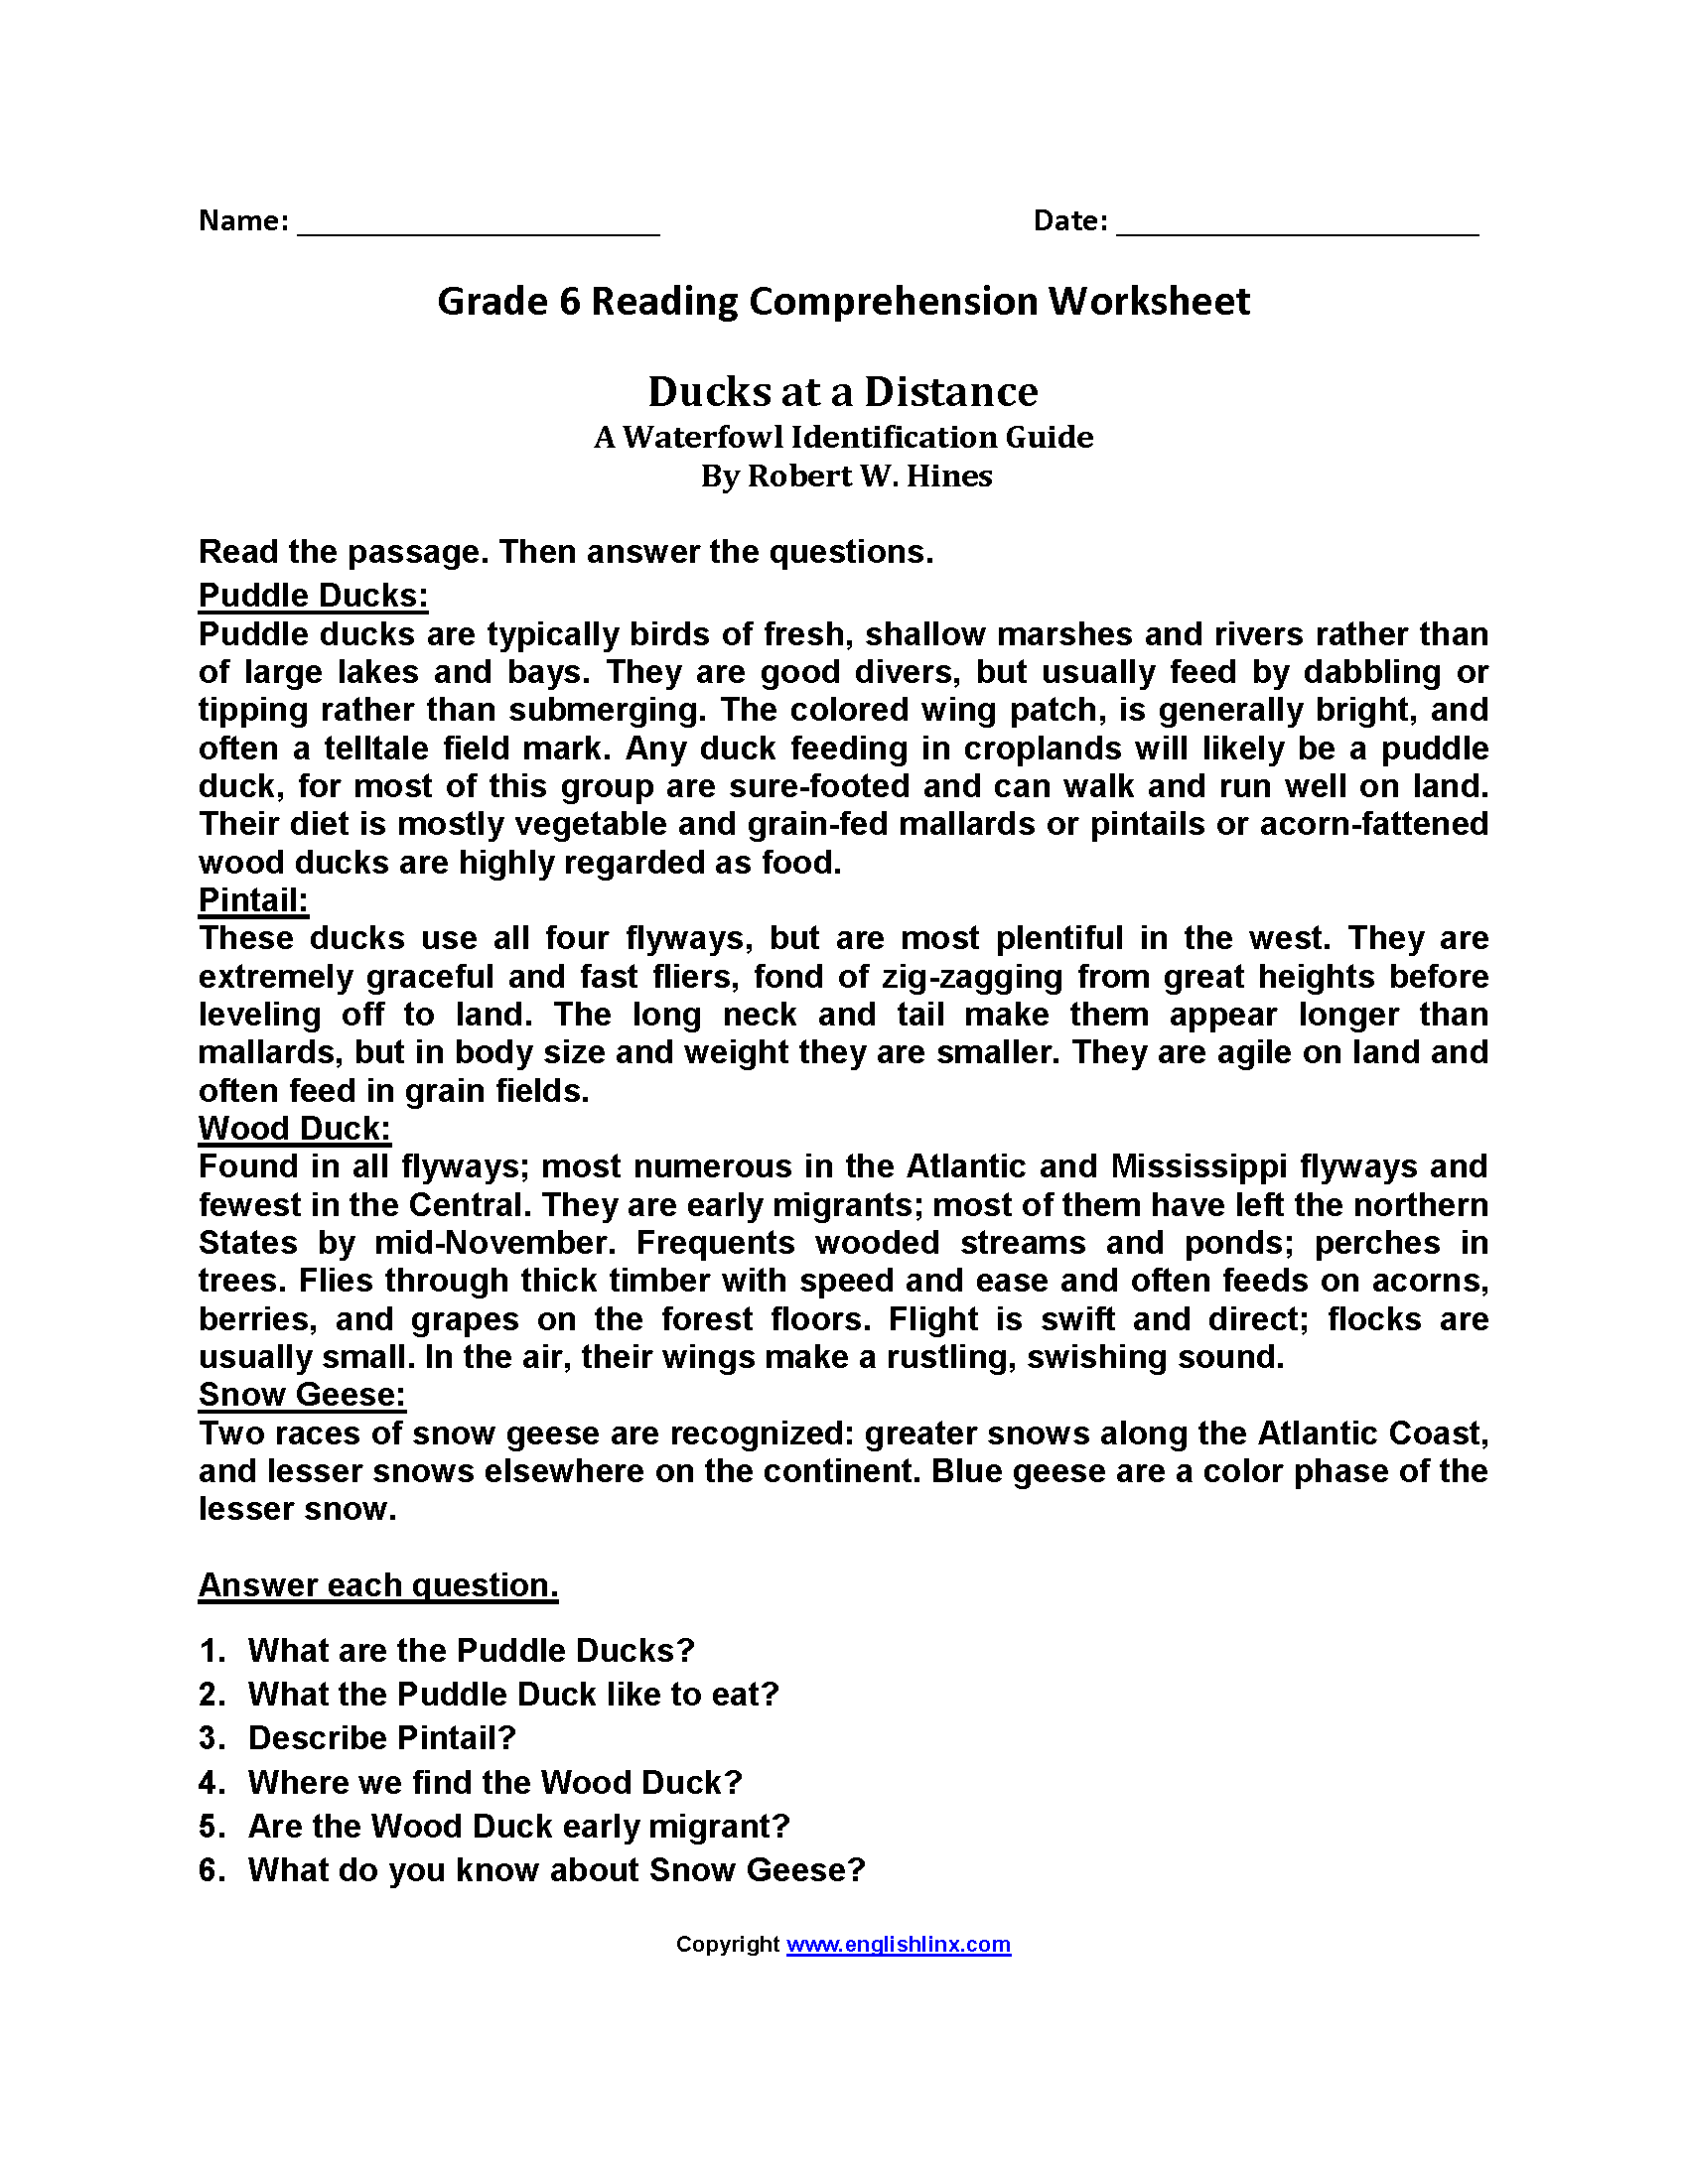 Worksheet Reading Comprehension Worksheets For 6th Grade Grass Fedjp Worksheet Study Site